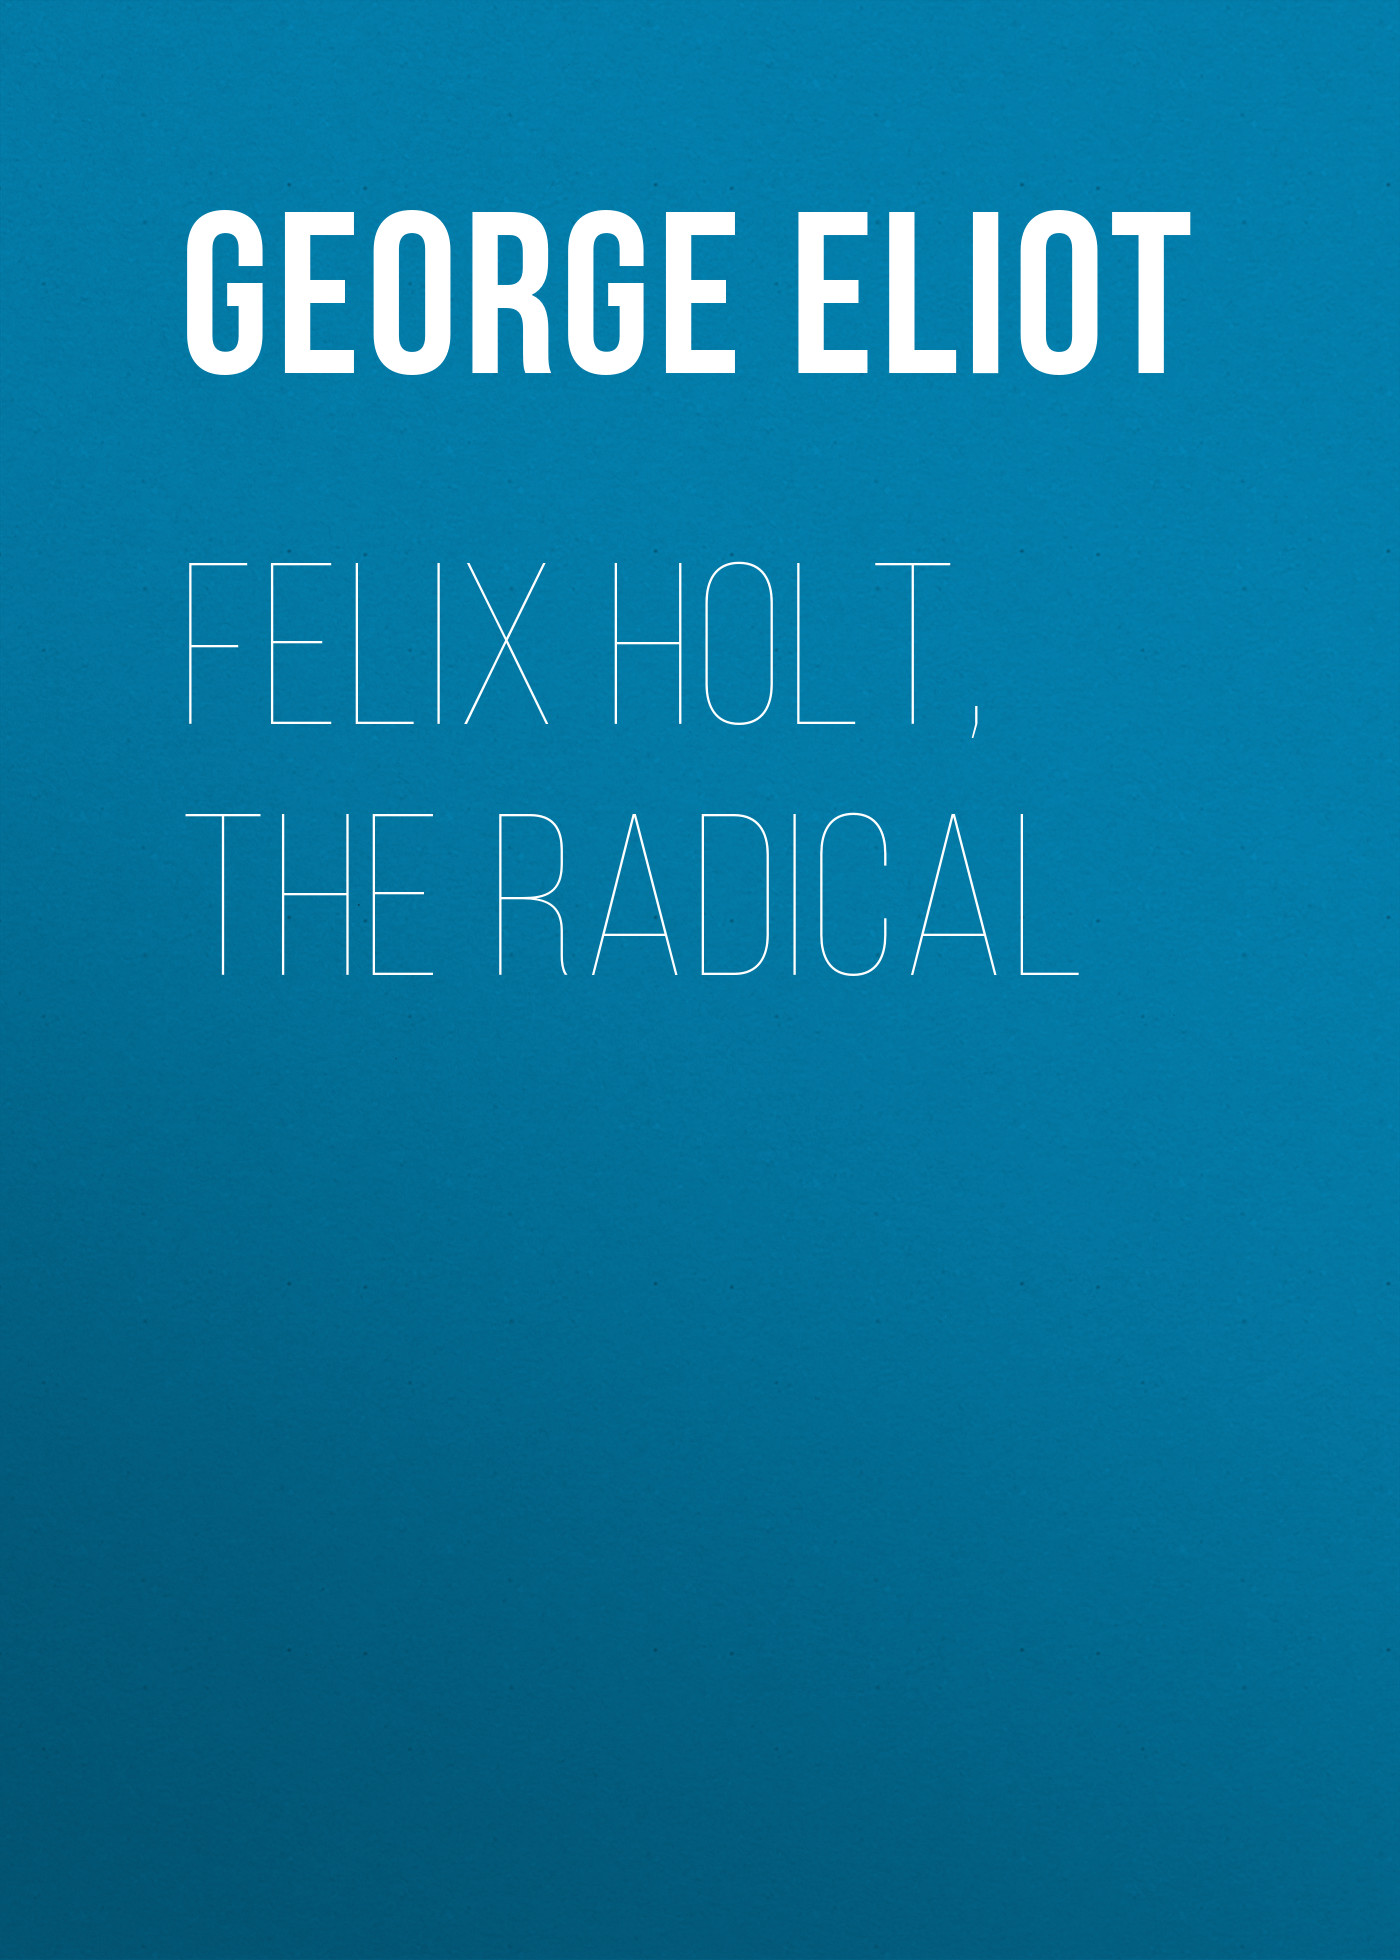 лучшая цена Джордж Элиот Felix Holt, the Radical